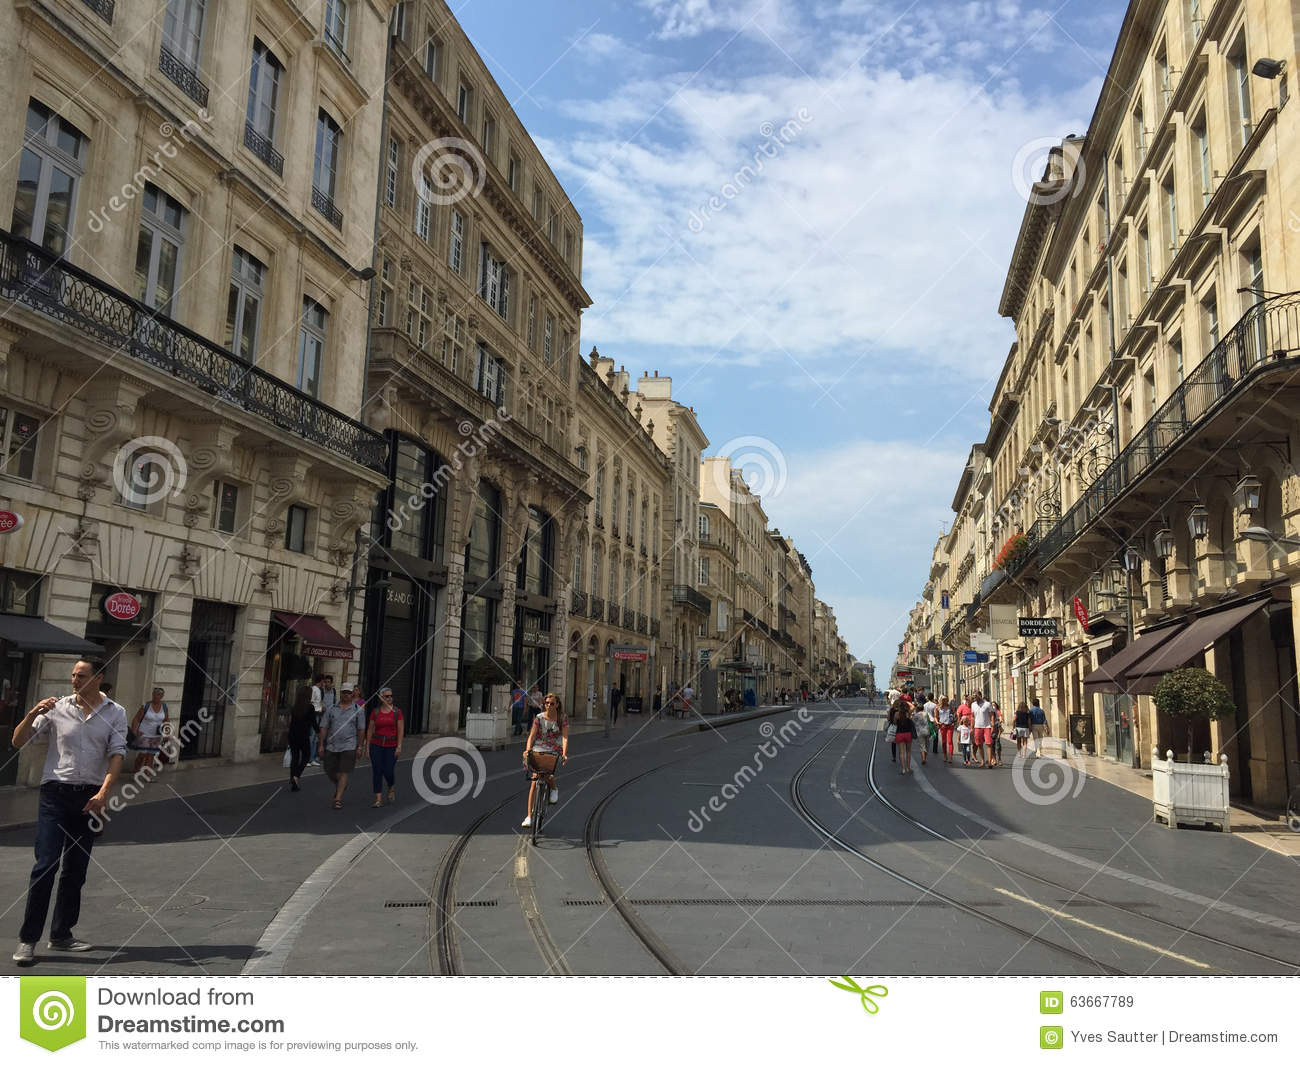 Rue de bordeaux architecture du 18 me si cle bordeaux for Architecture 18e siecle france